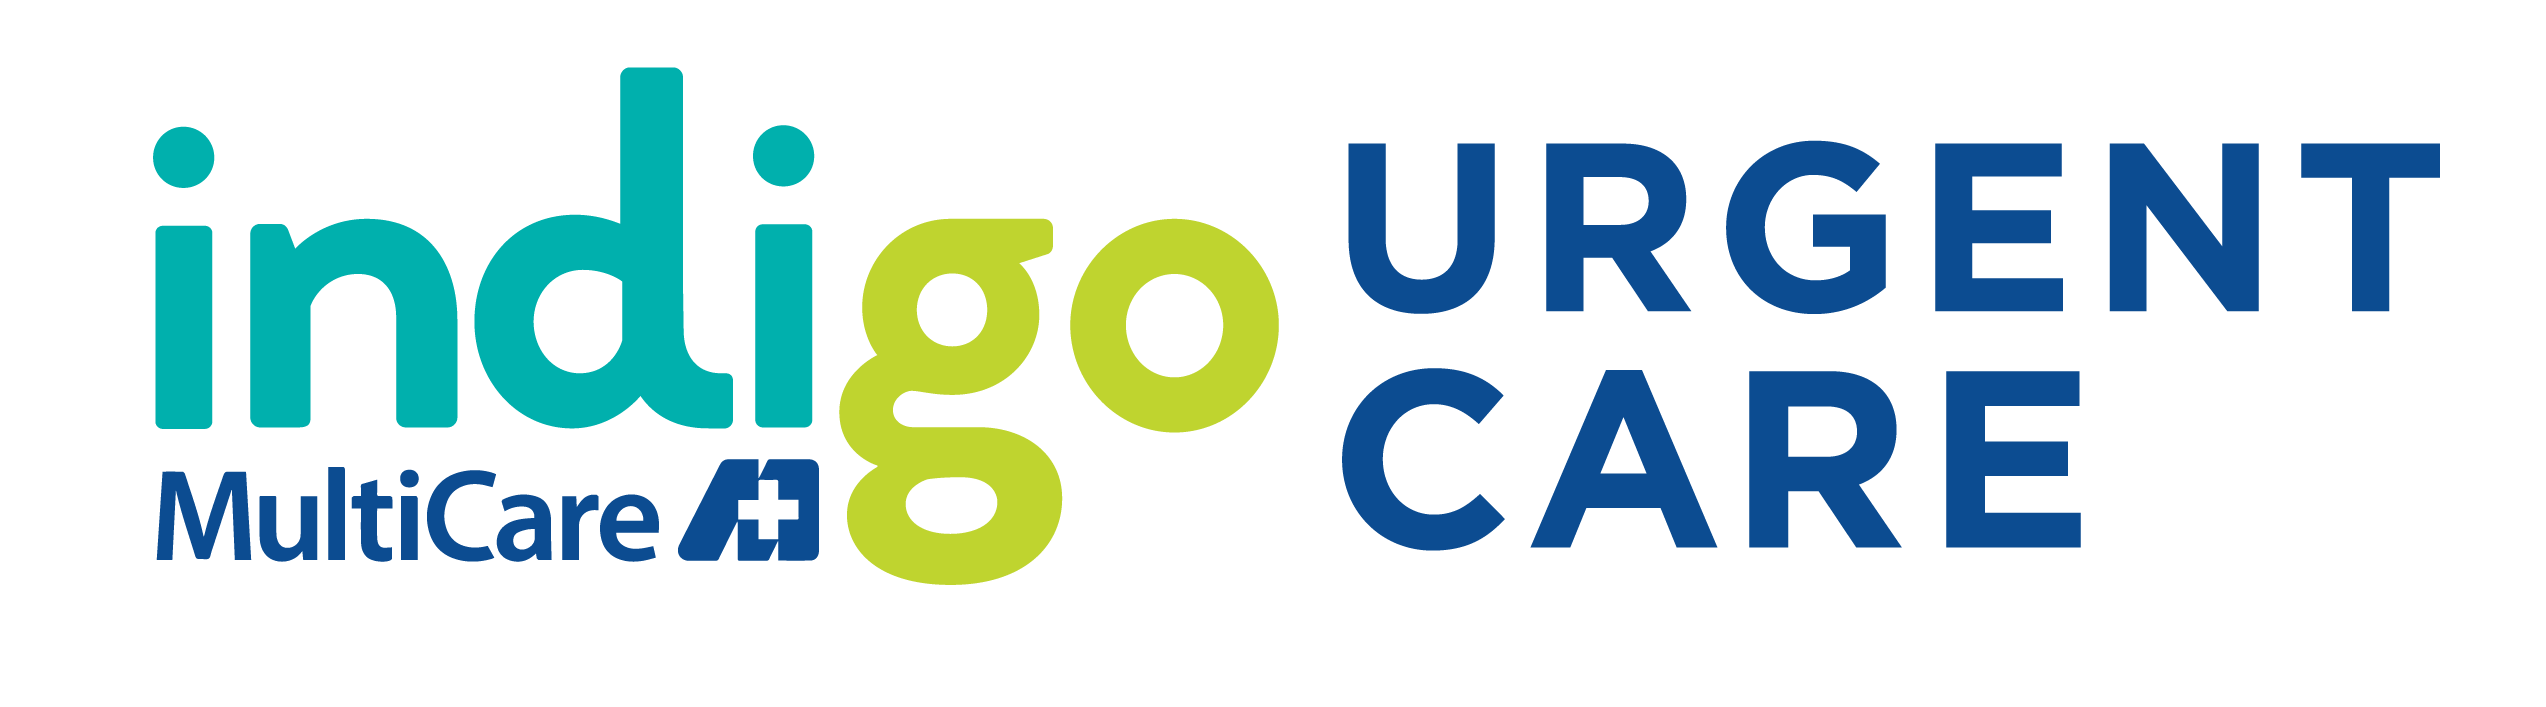 Multicare Indigo Urgent Care - North Spokane Logo